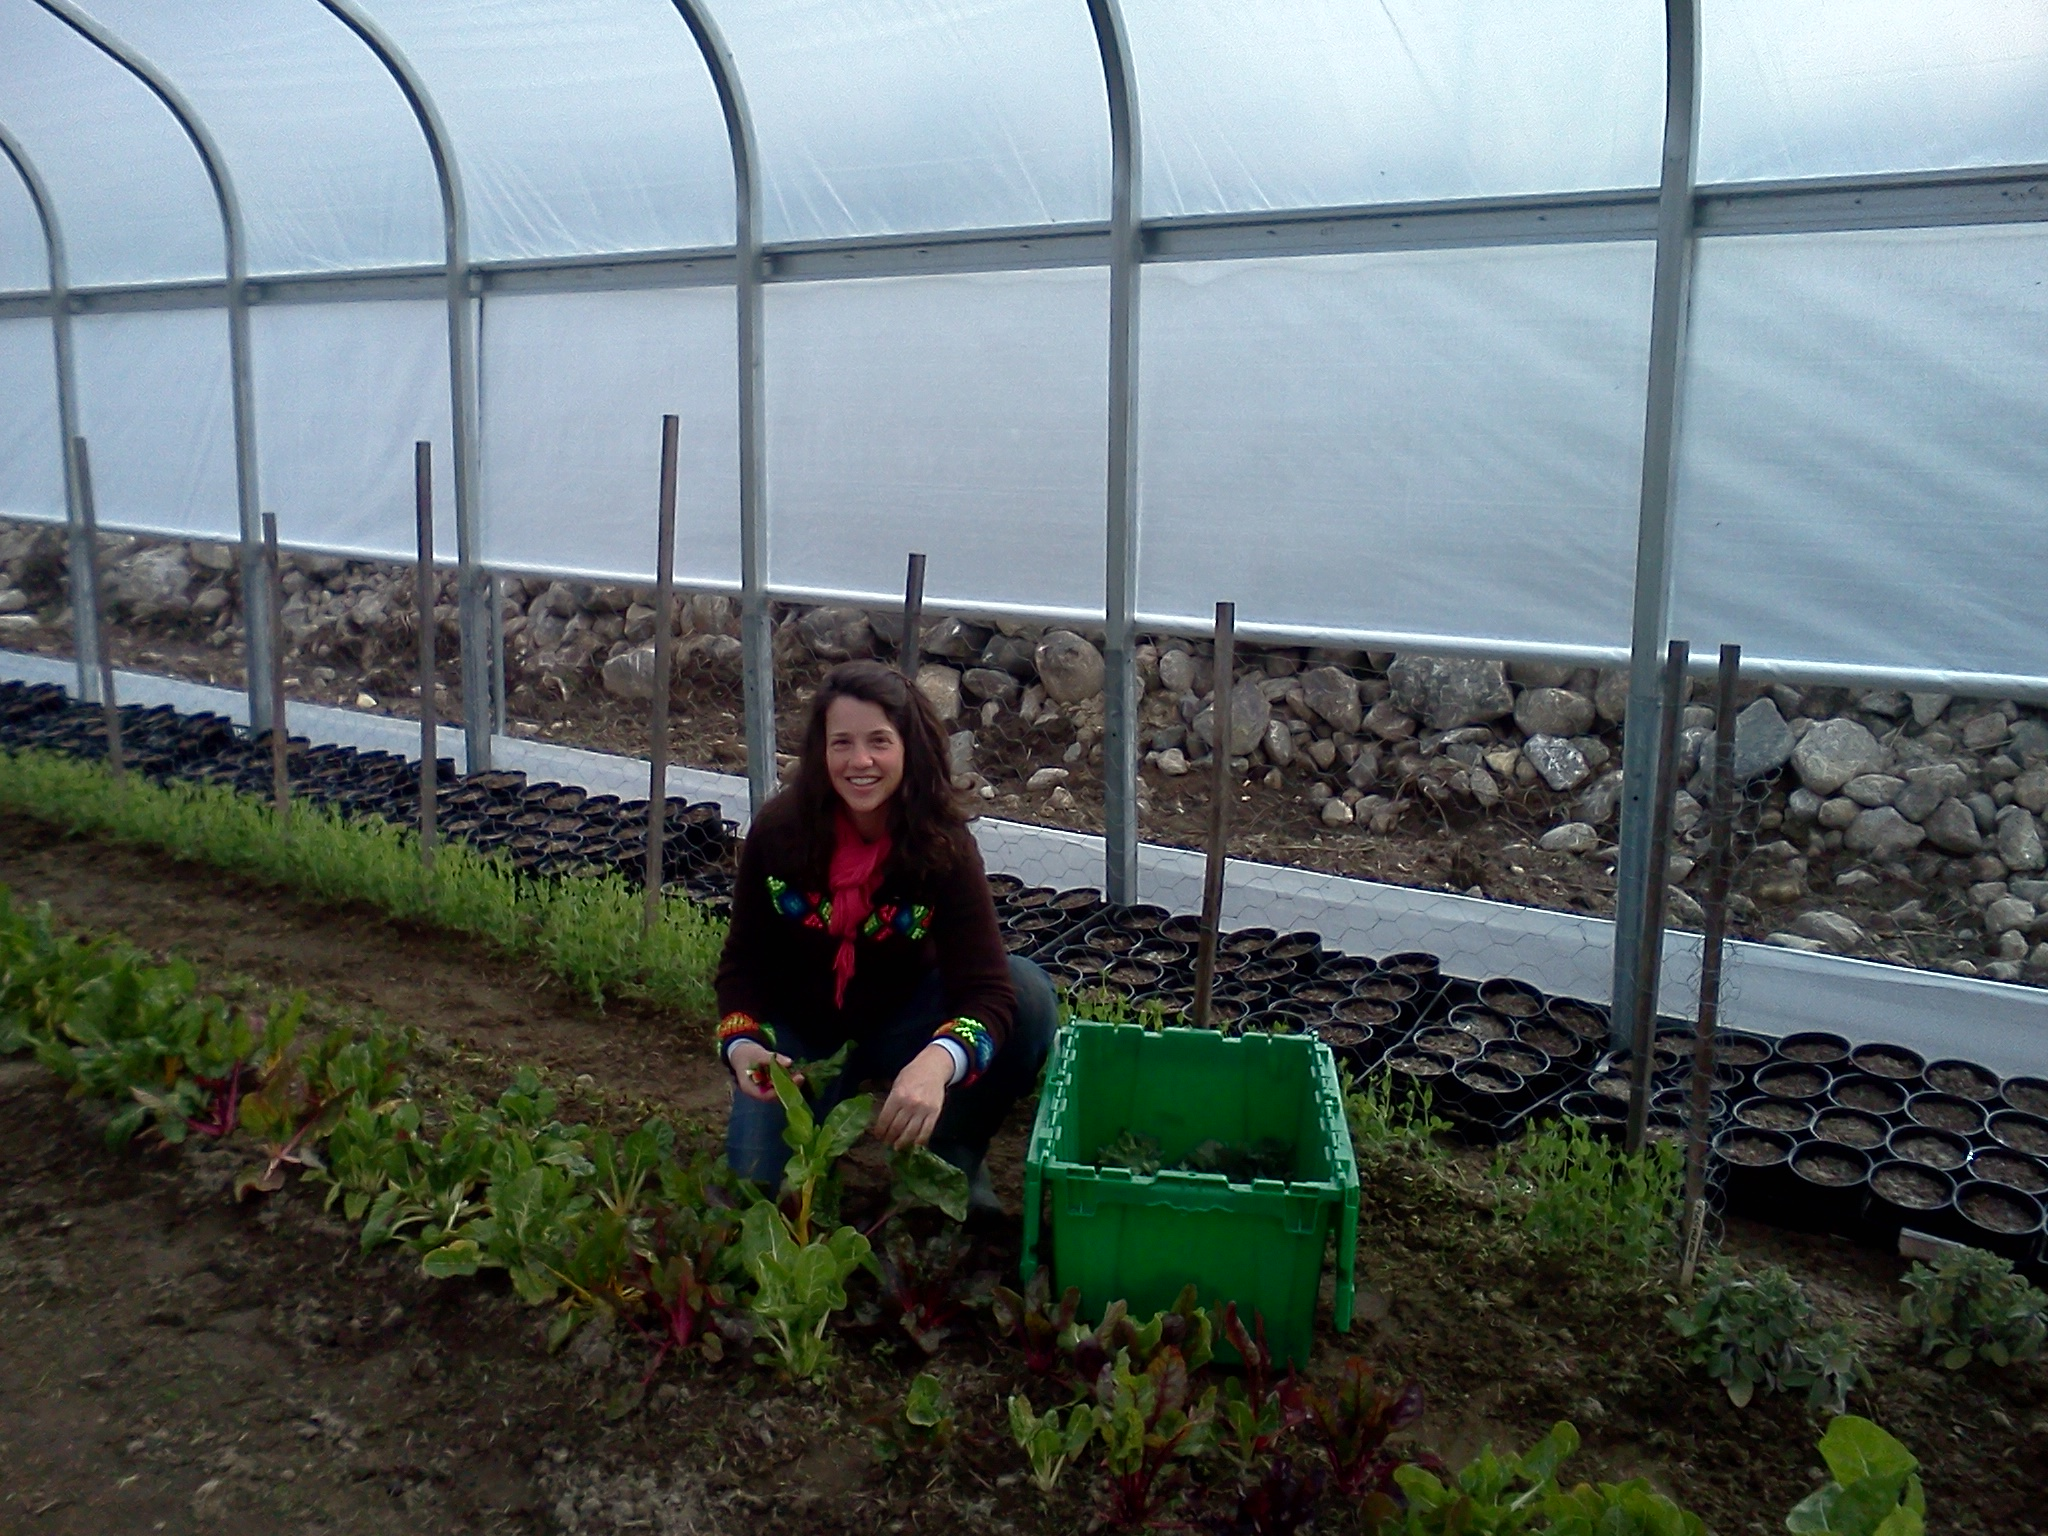 This is Mary, one of our field managers, harvesting greens for the Bridgton Farmers' Market from our greenhouse.